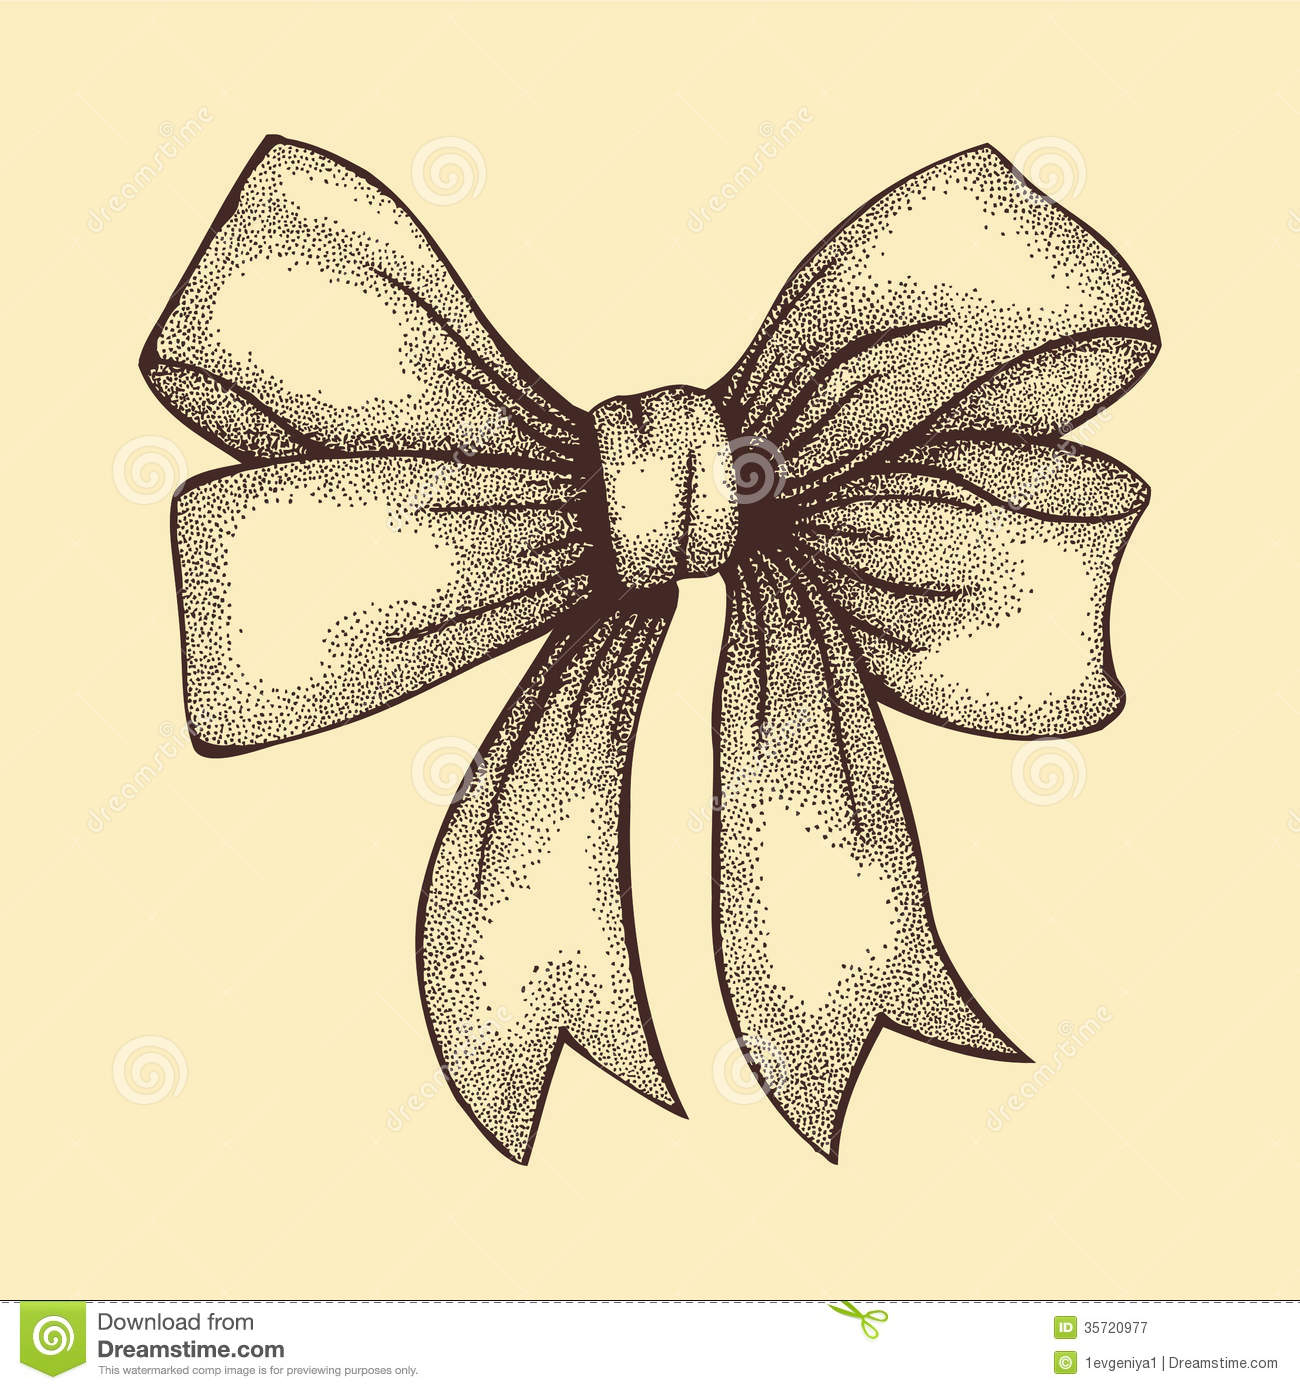 beautiful ribbon tied in bow freehand drawing in graphic style pen and ink